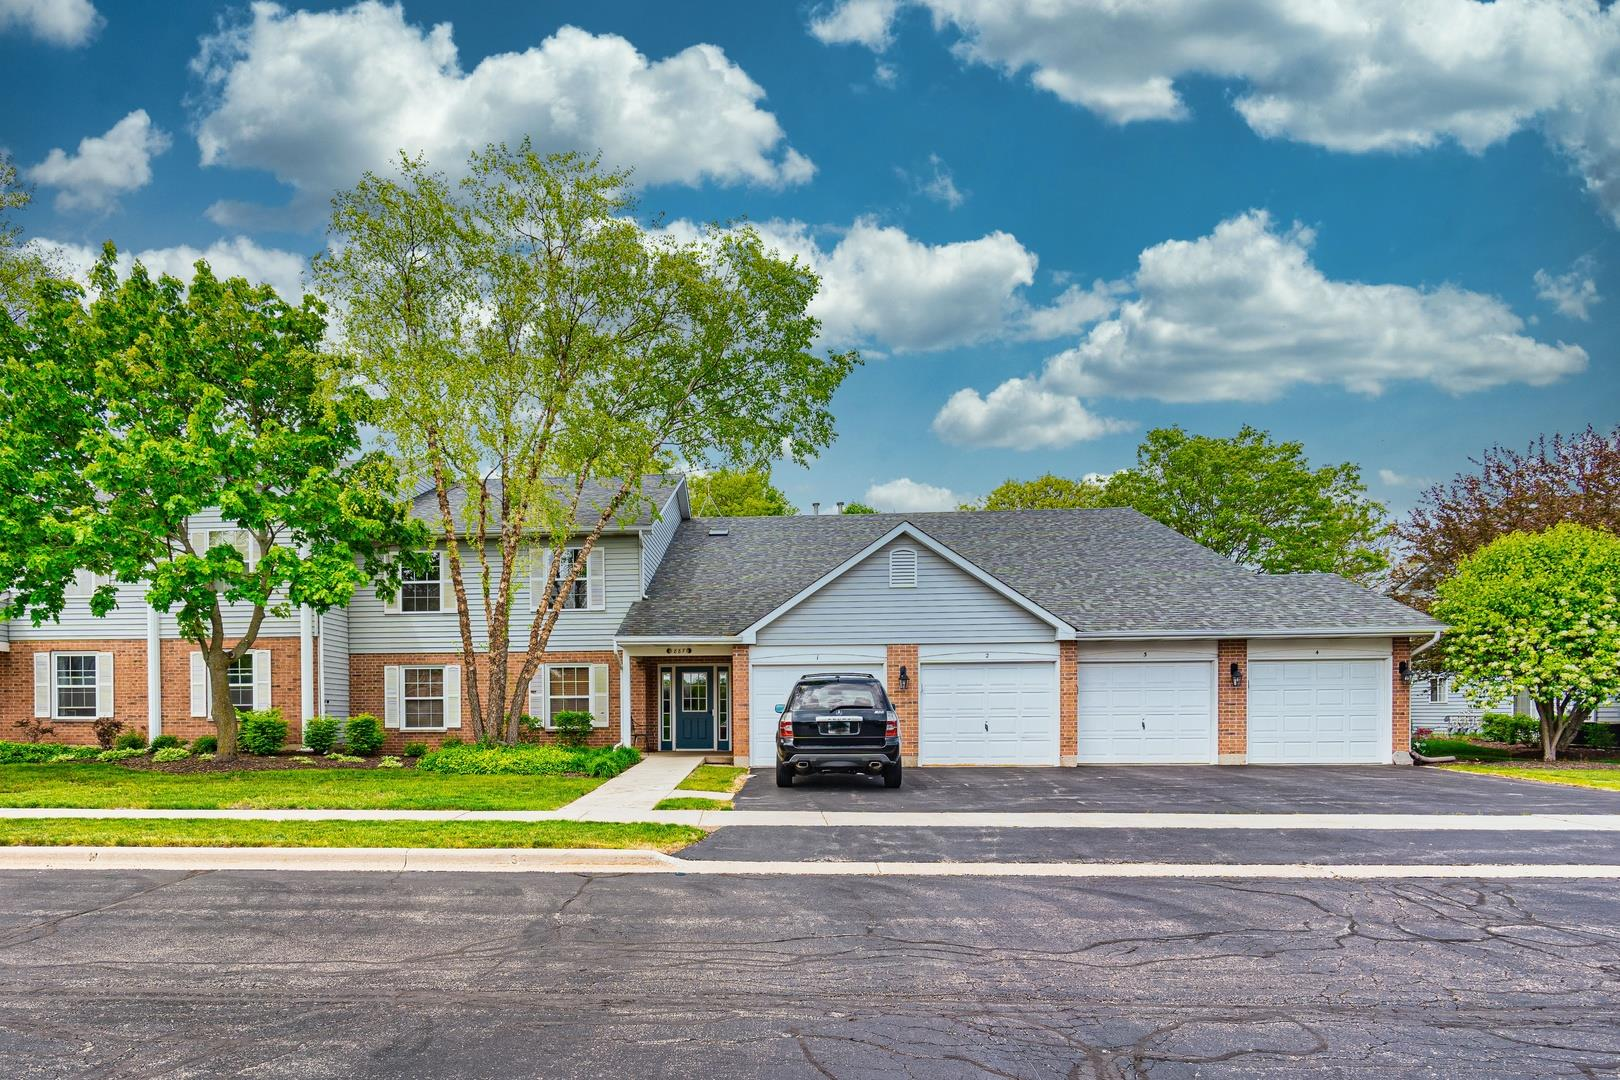 887 Golf Course Road #3, Crystal Lake, IL 60014 - #: 11099178